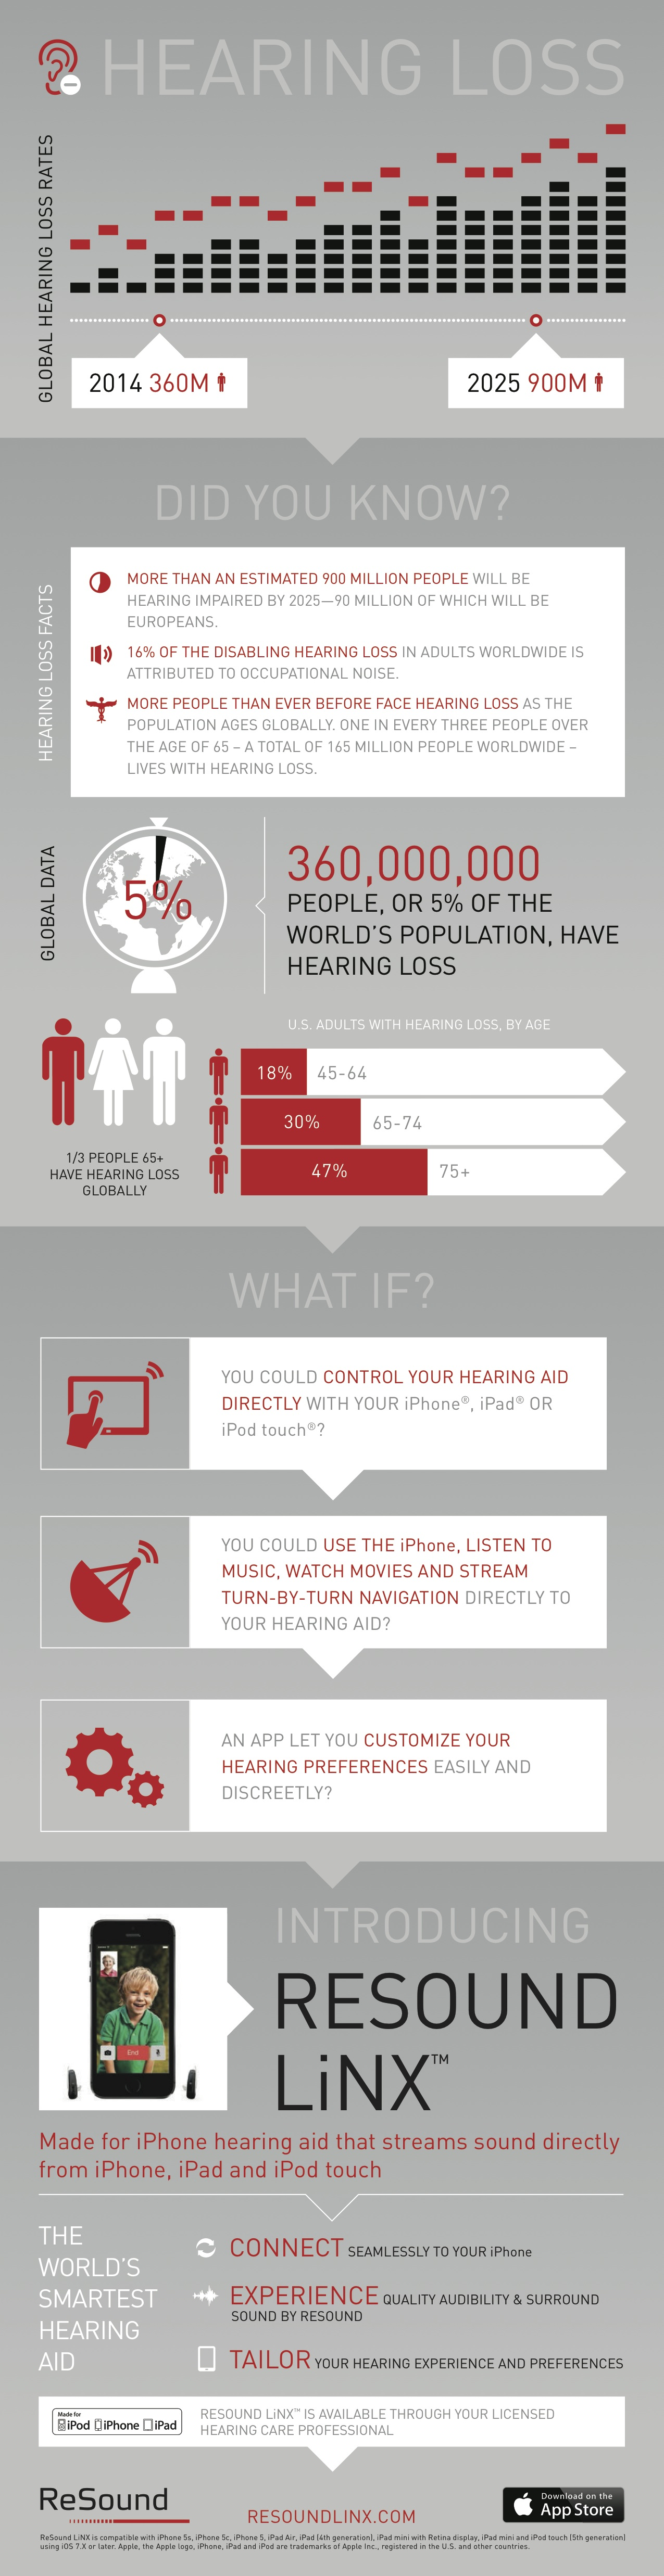 Resound LiNX Infographic Global_Web